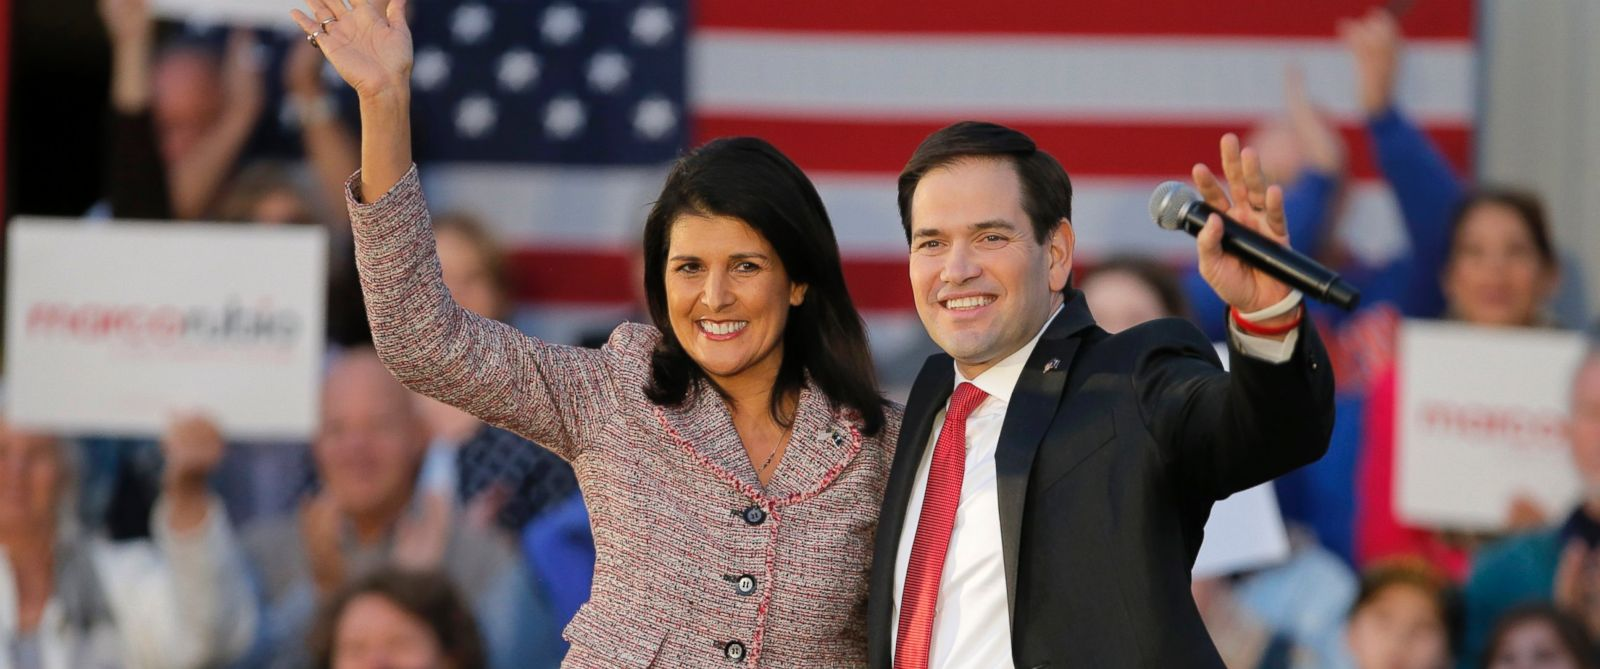 PHOTO: South Carolina Governor Nikki Haley and presidential candidate Marco Rubio react on stage during a campaign event in Chapin, South Carolina, Feb. 17, 2016.